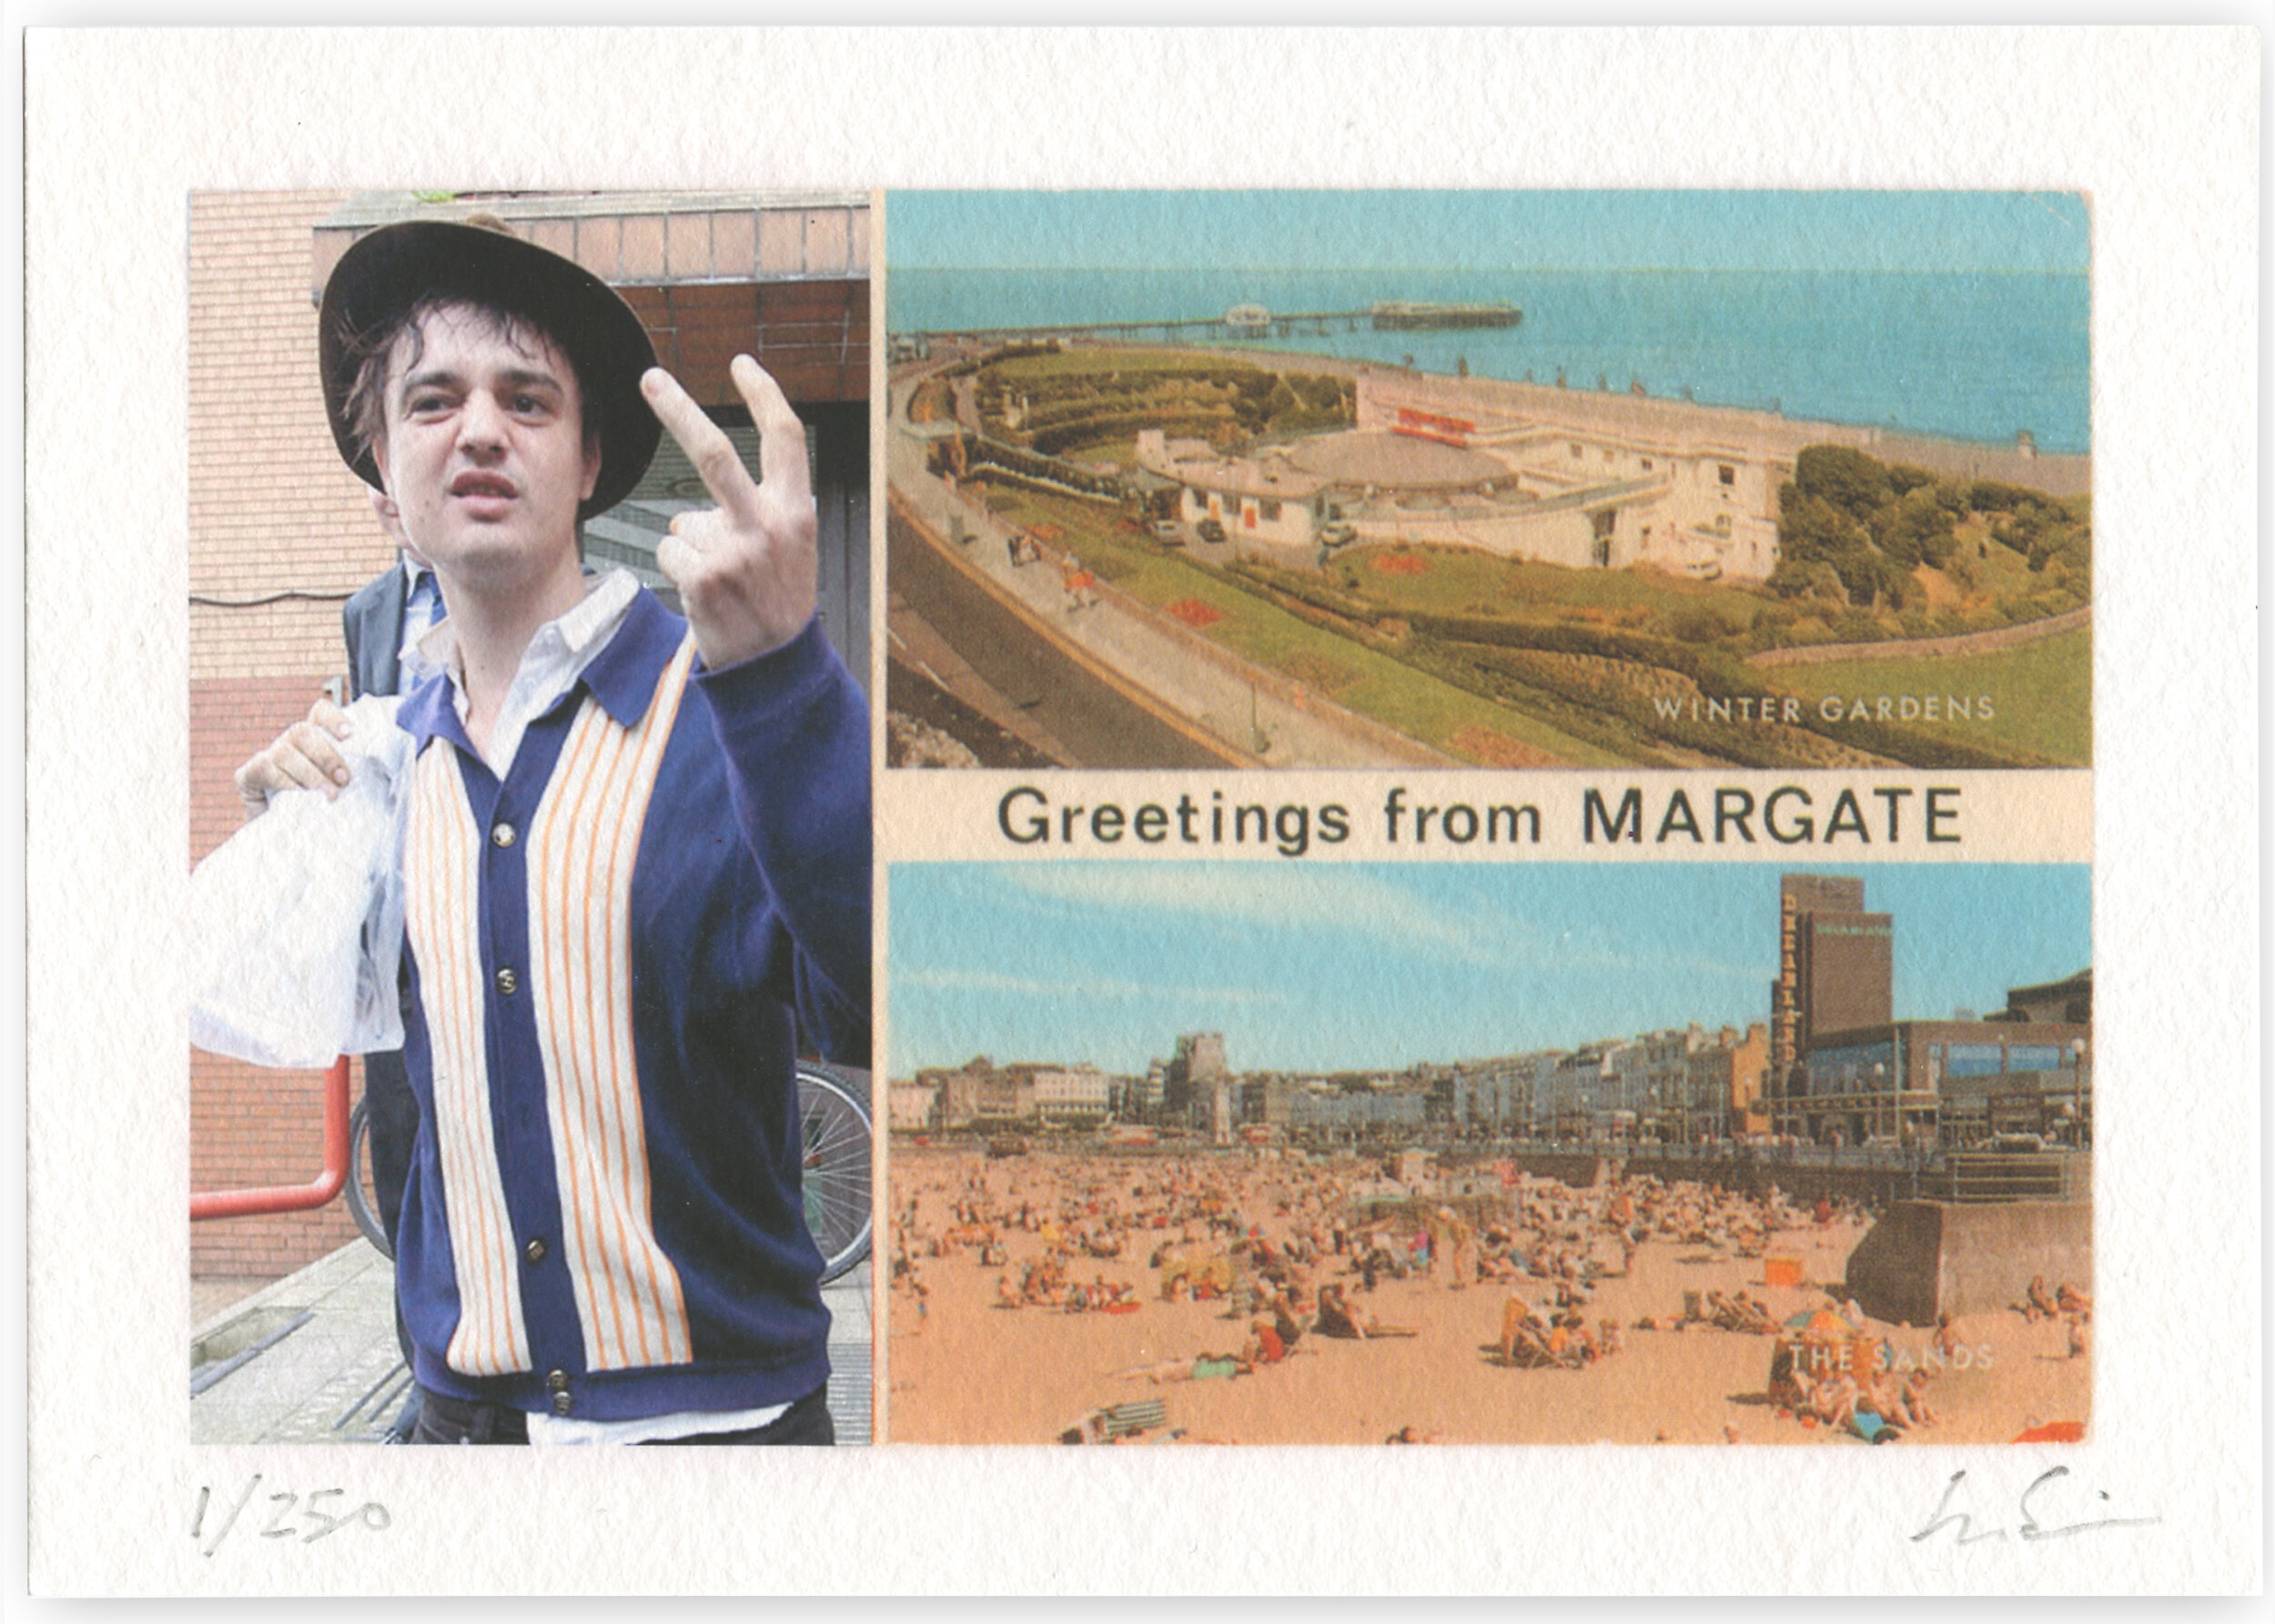 Greetings from Margate  by James Springall   Fine Art Giclée print on Hahnemühle Pearl  Limited Edition of 250